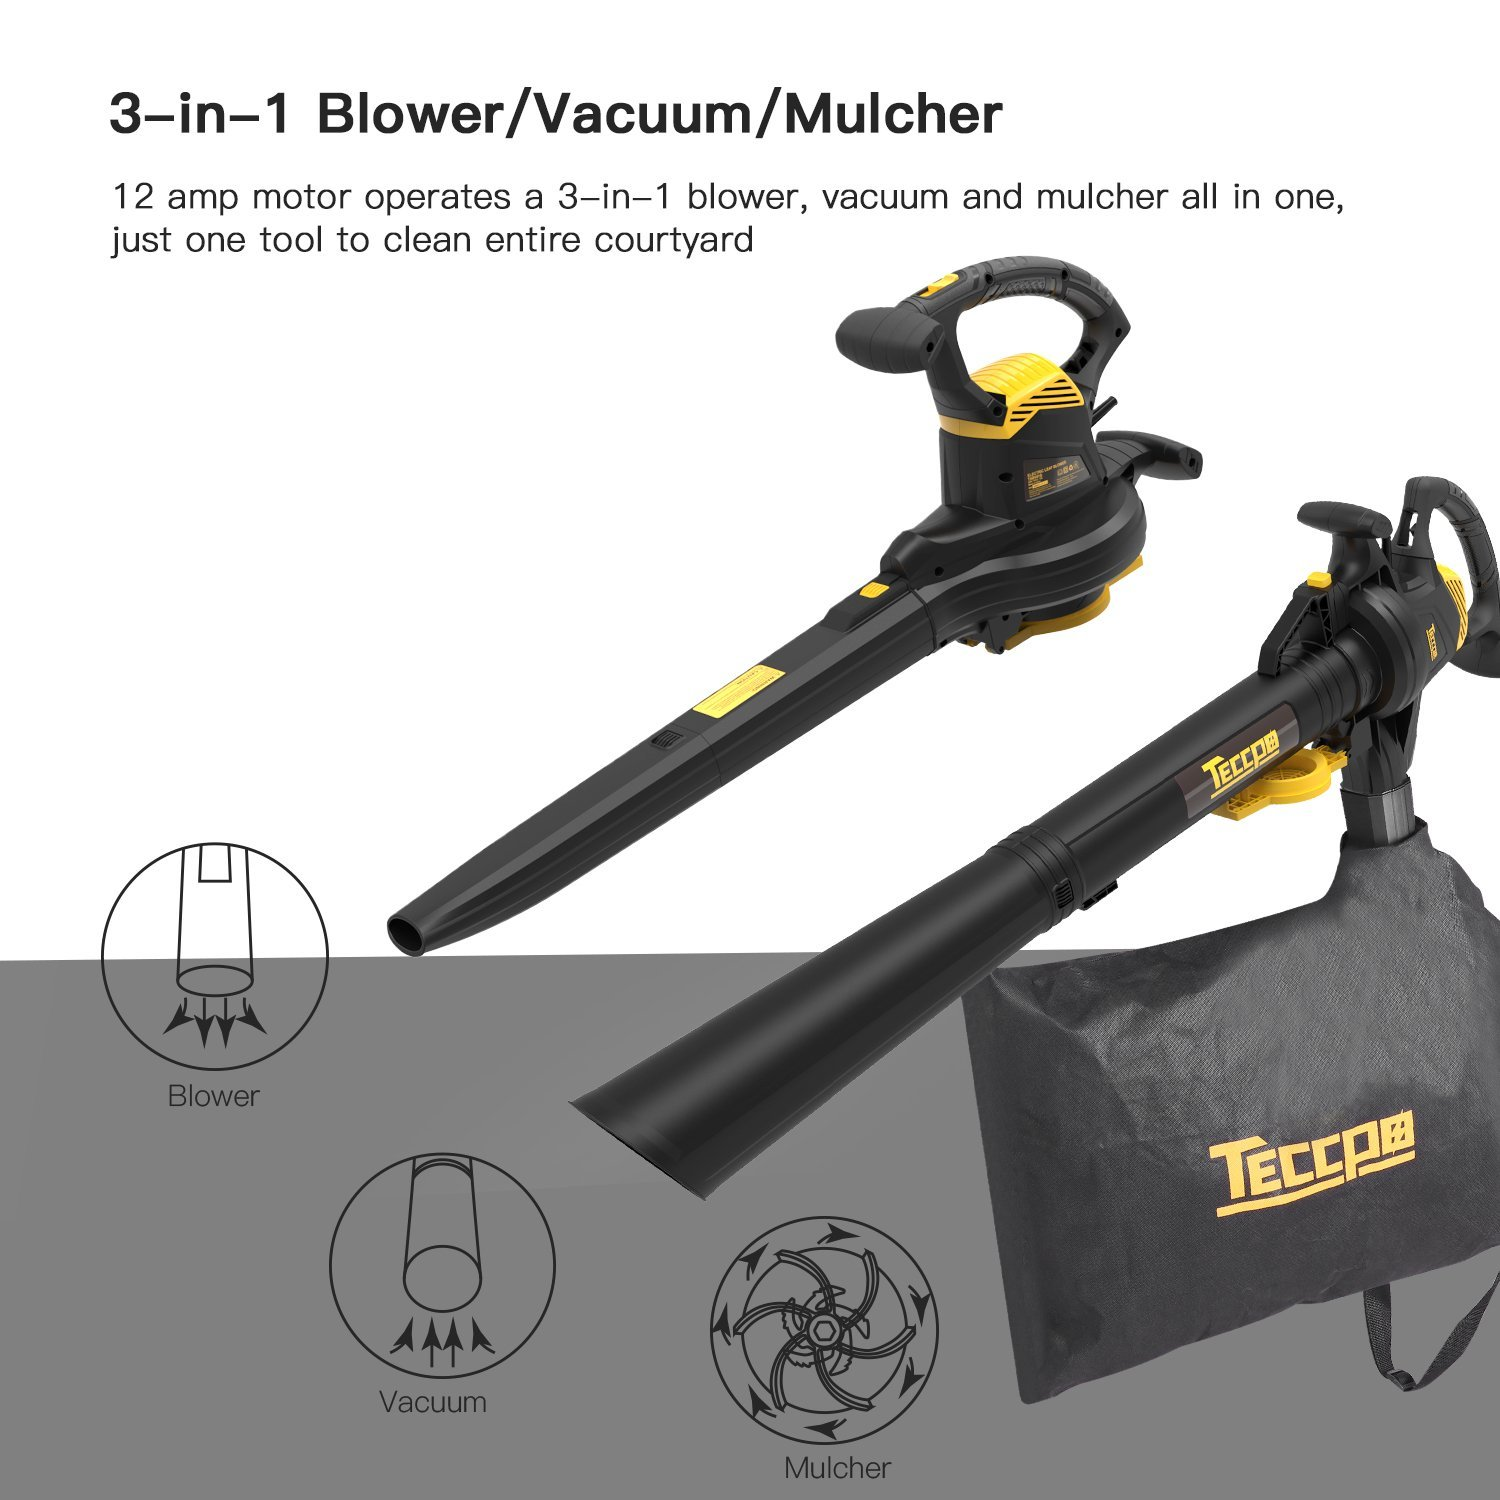 Leaf Blower Vacuum, TECCPO TABV01G 12-Amp 250MPH 410CFM 3 in 1 corded electric Two-Speed Sweeper/Vac/Mulcher, Plastic Impeller Metal Blade, Ideal for Lawn and Garden by TECCPO (Image #3)